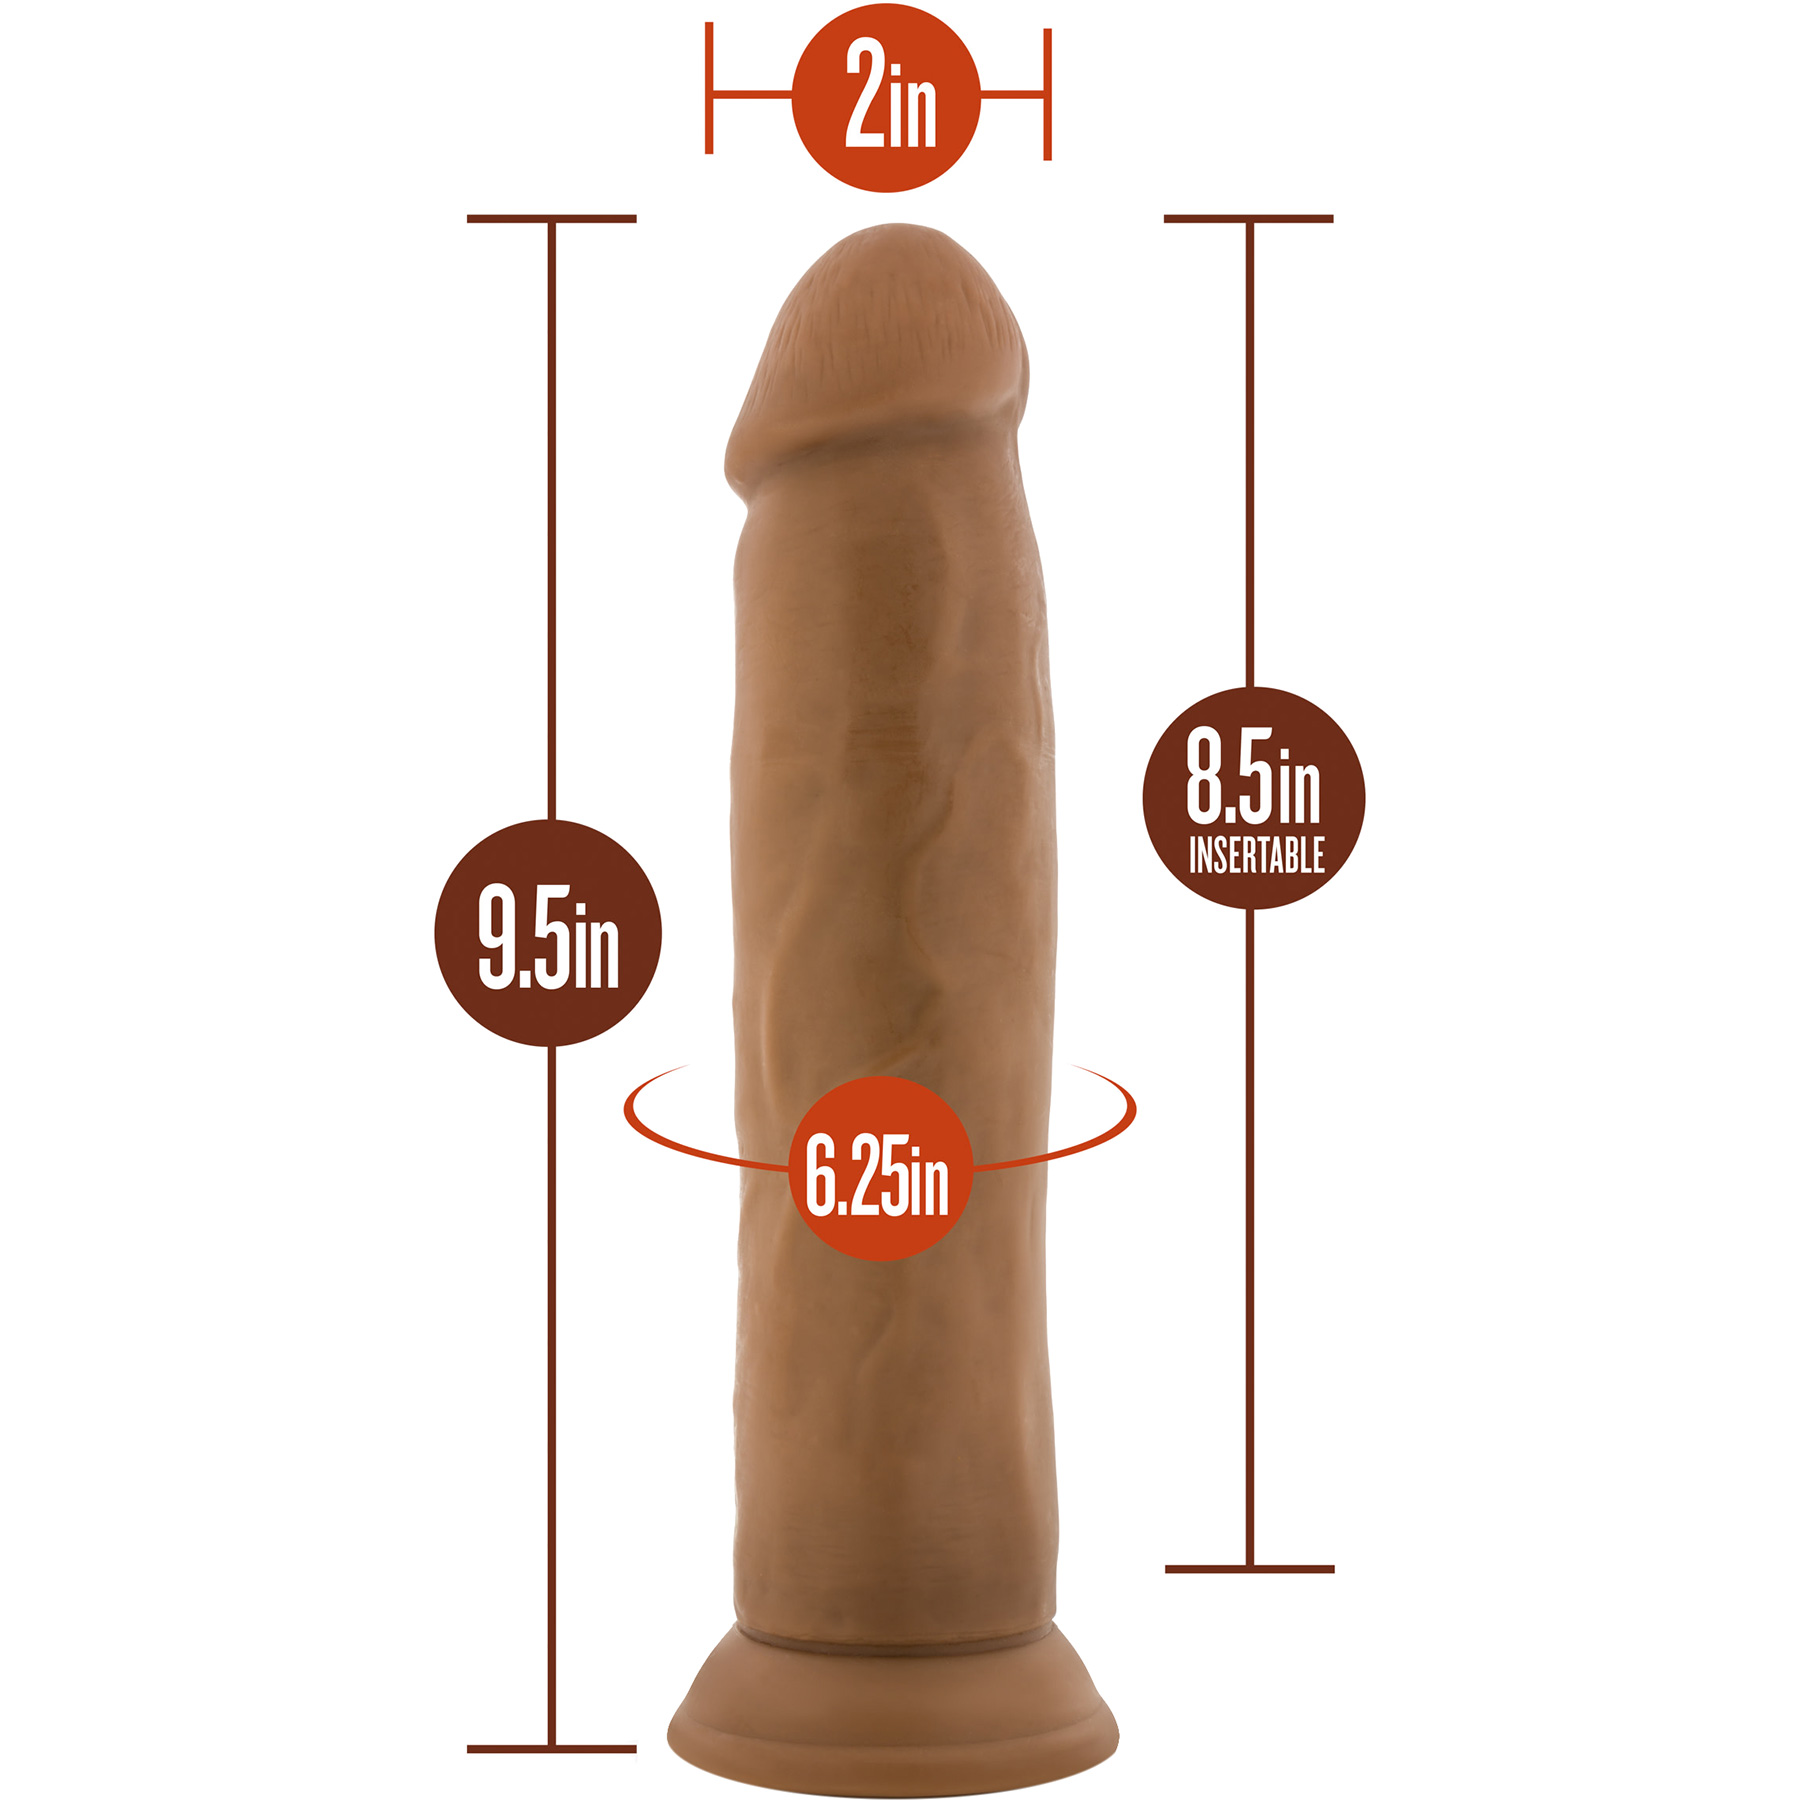 Dr. Skin 9.5 Inch Realistic Dildo With Suction Cup by Blush - Measurements